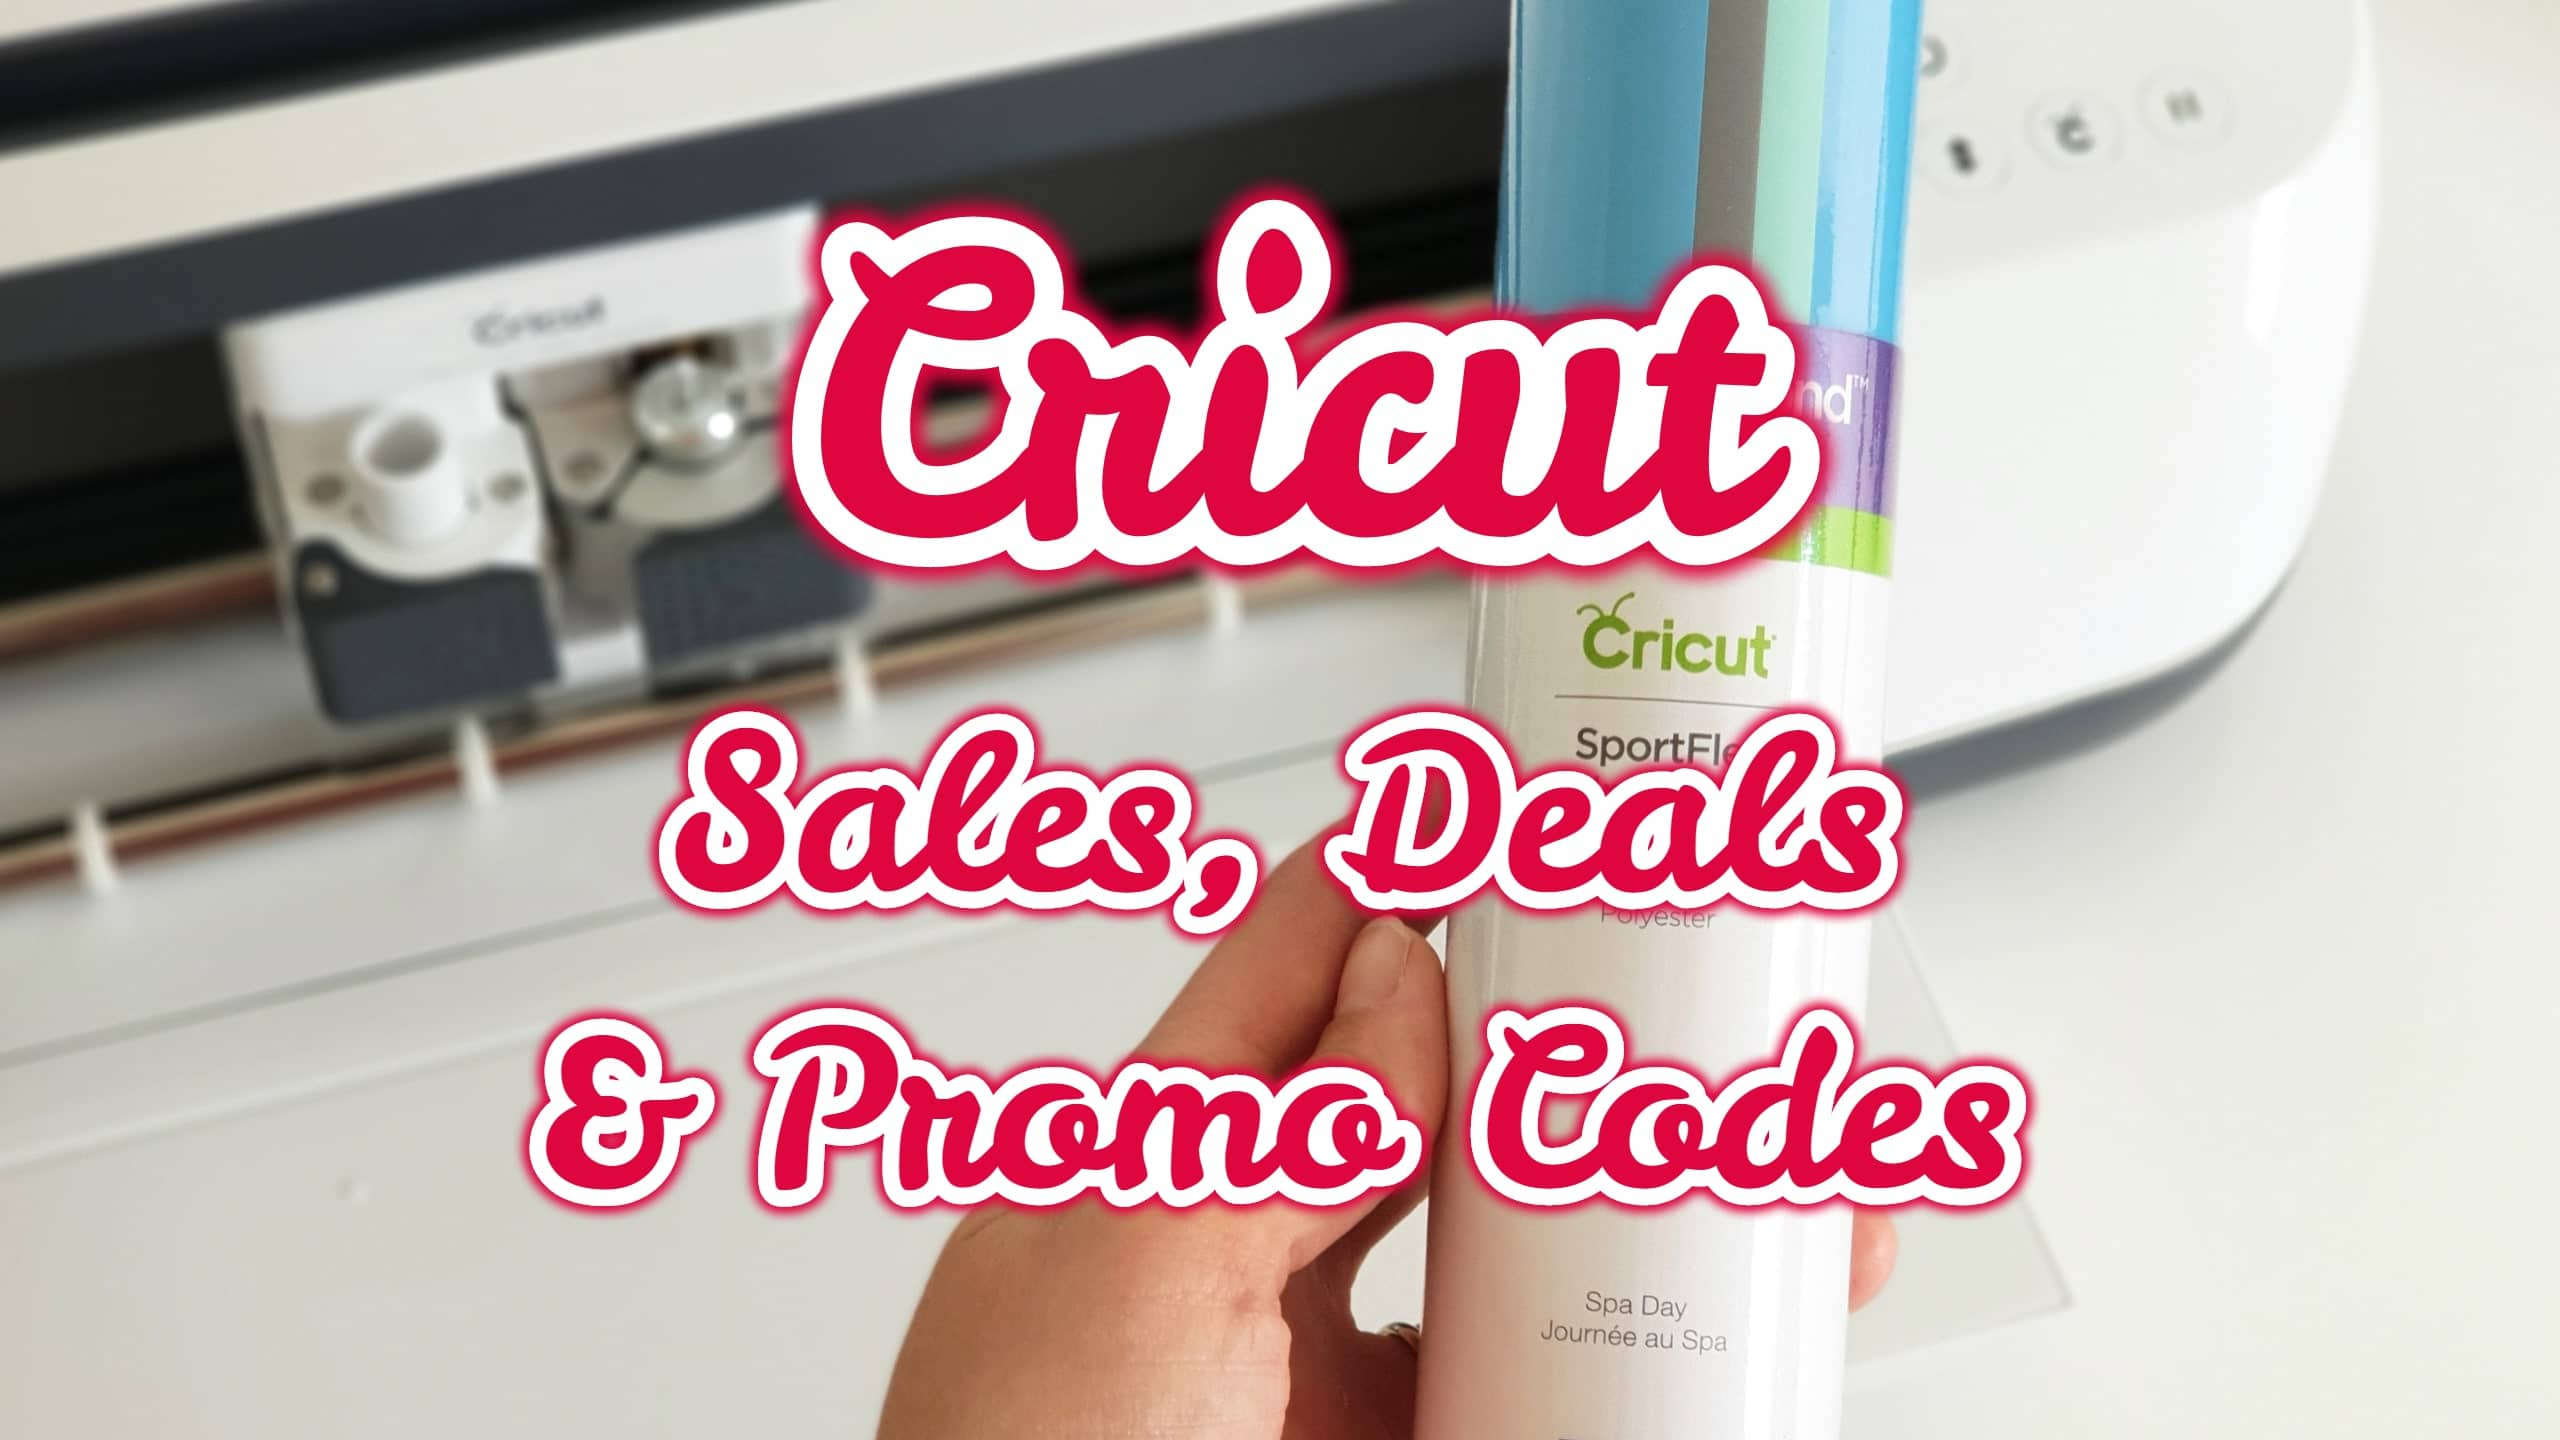 Cricut sales, deals, and promo codes